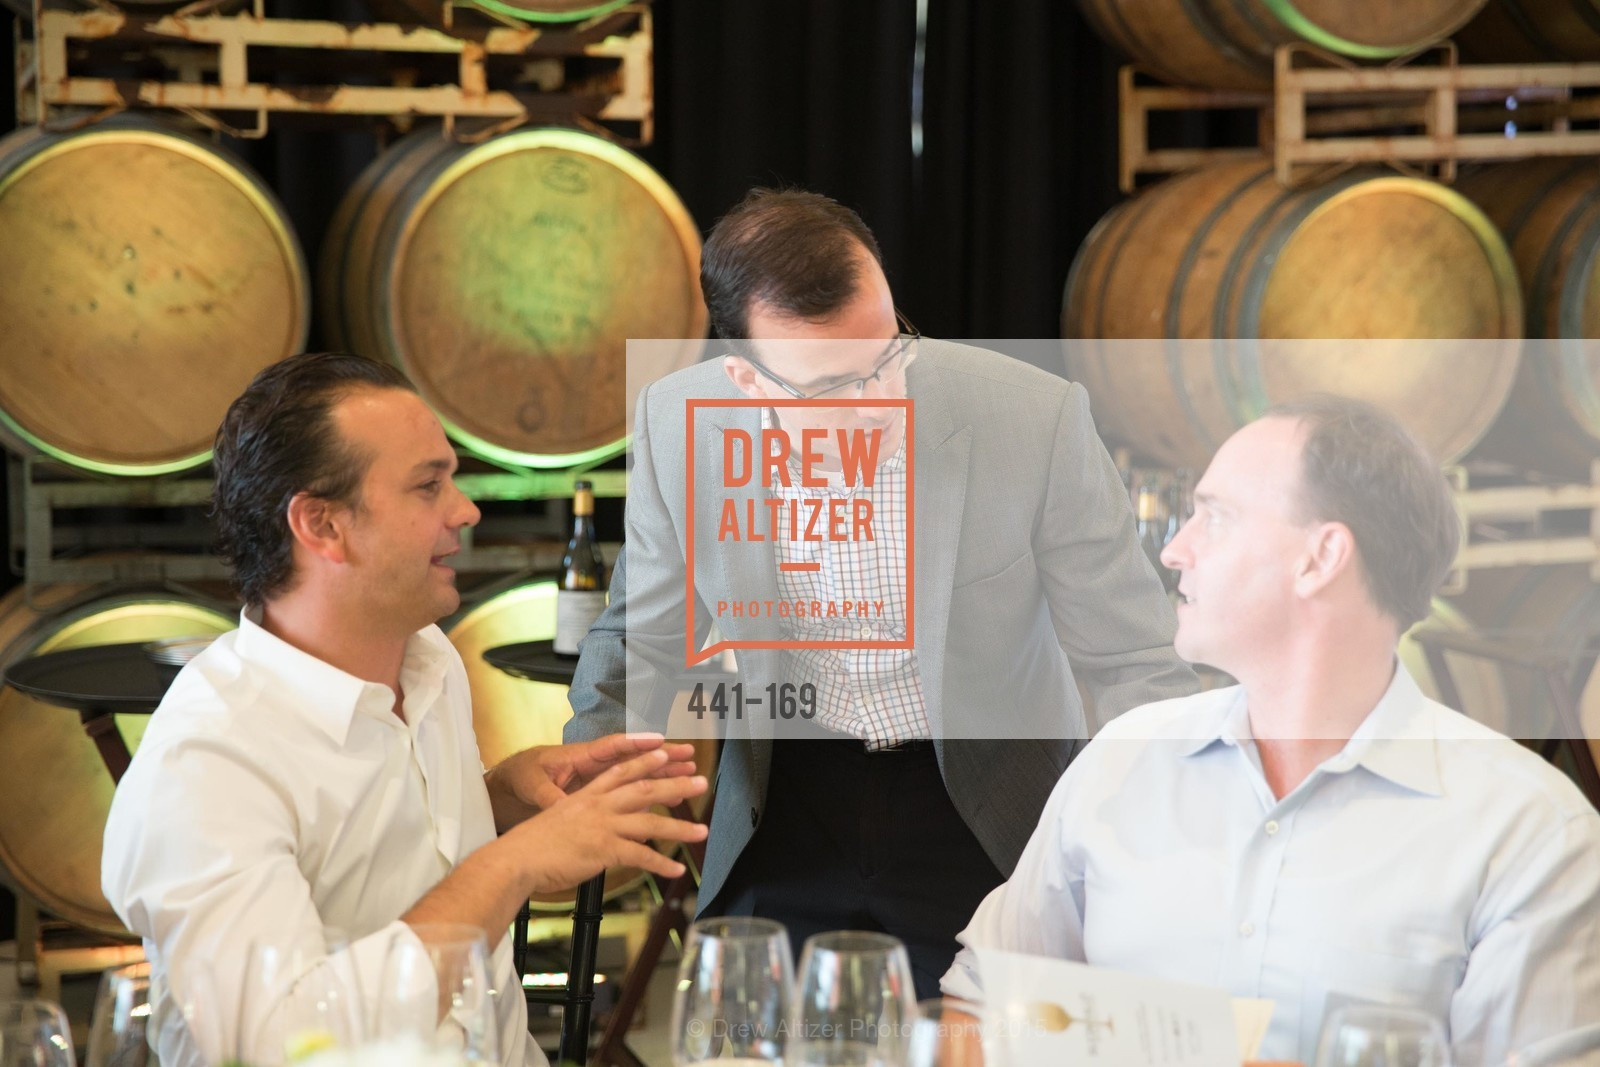 Extras, Silicon Valley Wine Auction Benefiting Silicon Valley Education Foundation, June 19th, 2015, Photo,Drew Altizer, Drew Altizer Photography, full-service agency, private events, San Francisco photographer, photographer california